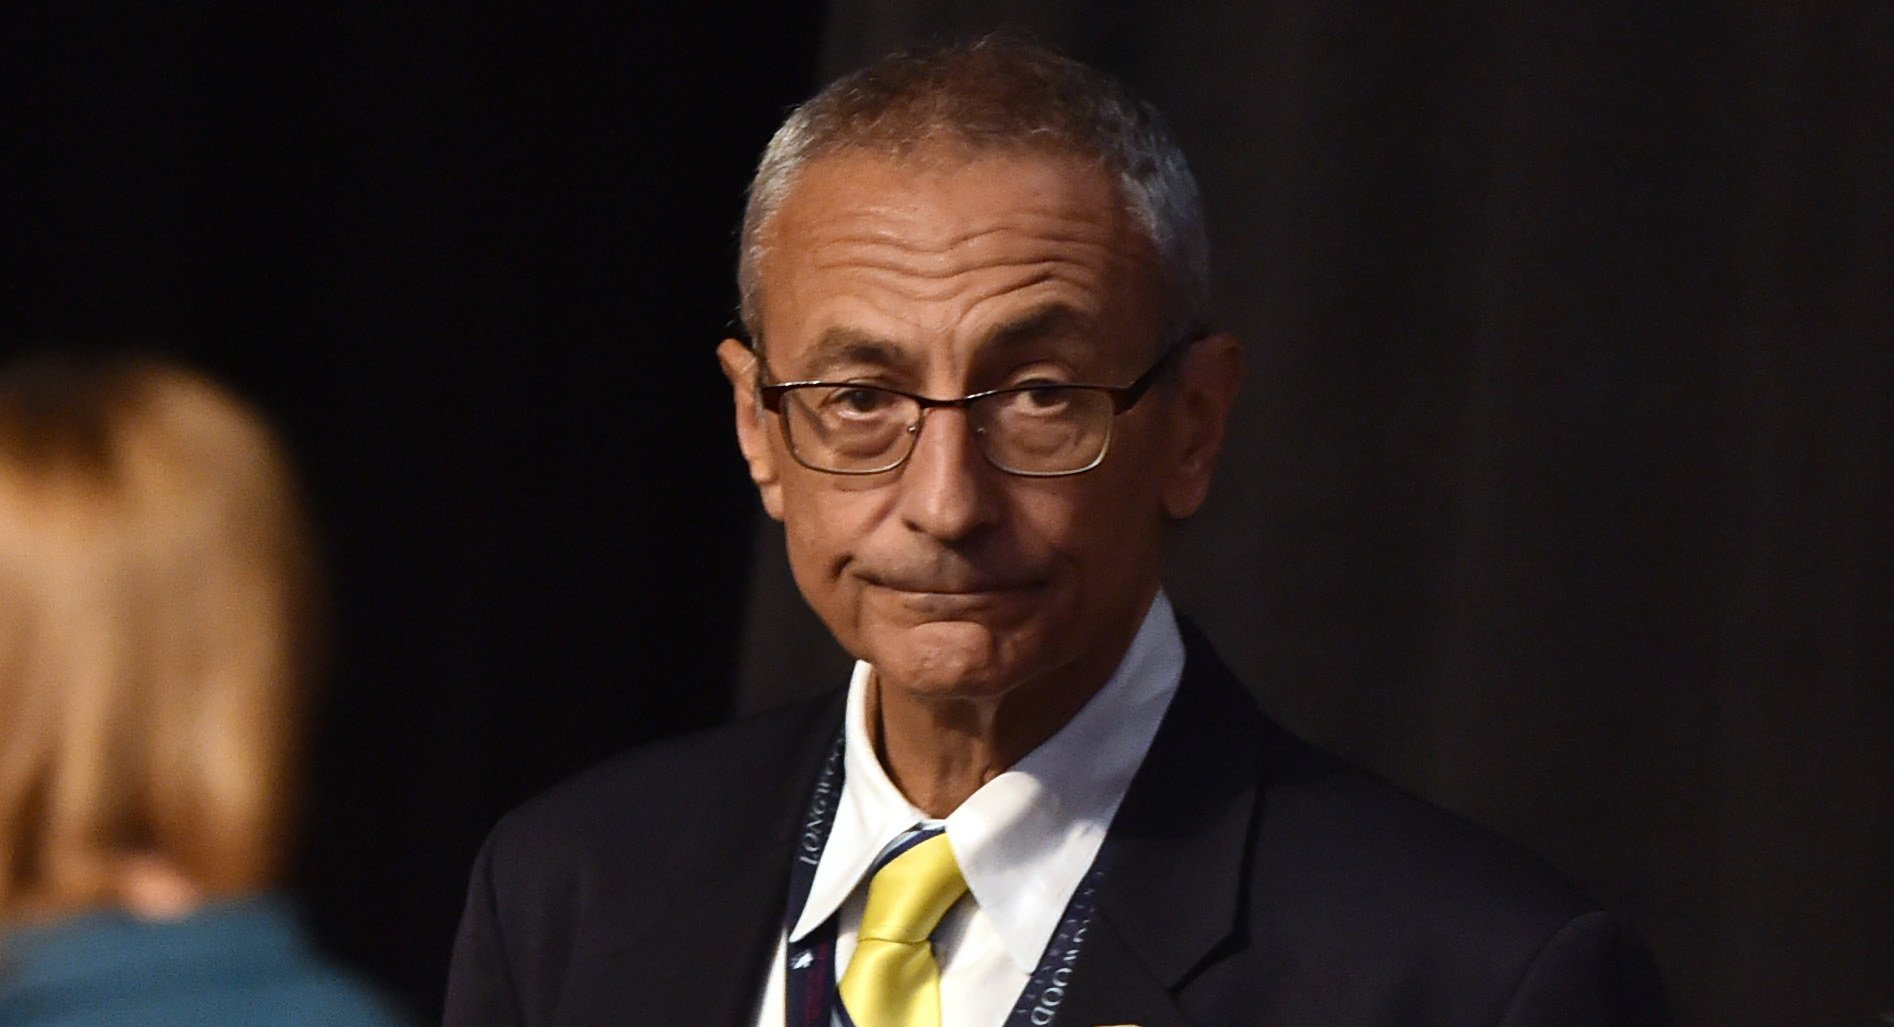 """Former Clinton campaign chairman John Podesta had a brutal exchange on CBS's """"Face the Nation"""" on Sunday when asked about the campaign's failure to focus on so-called """"purple states"""" in 2016. Host Nancy Cordes noted that an indictment handed down by special counsel Robert Mueller on Friday showed that Russian operatives who meddled in the …"""